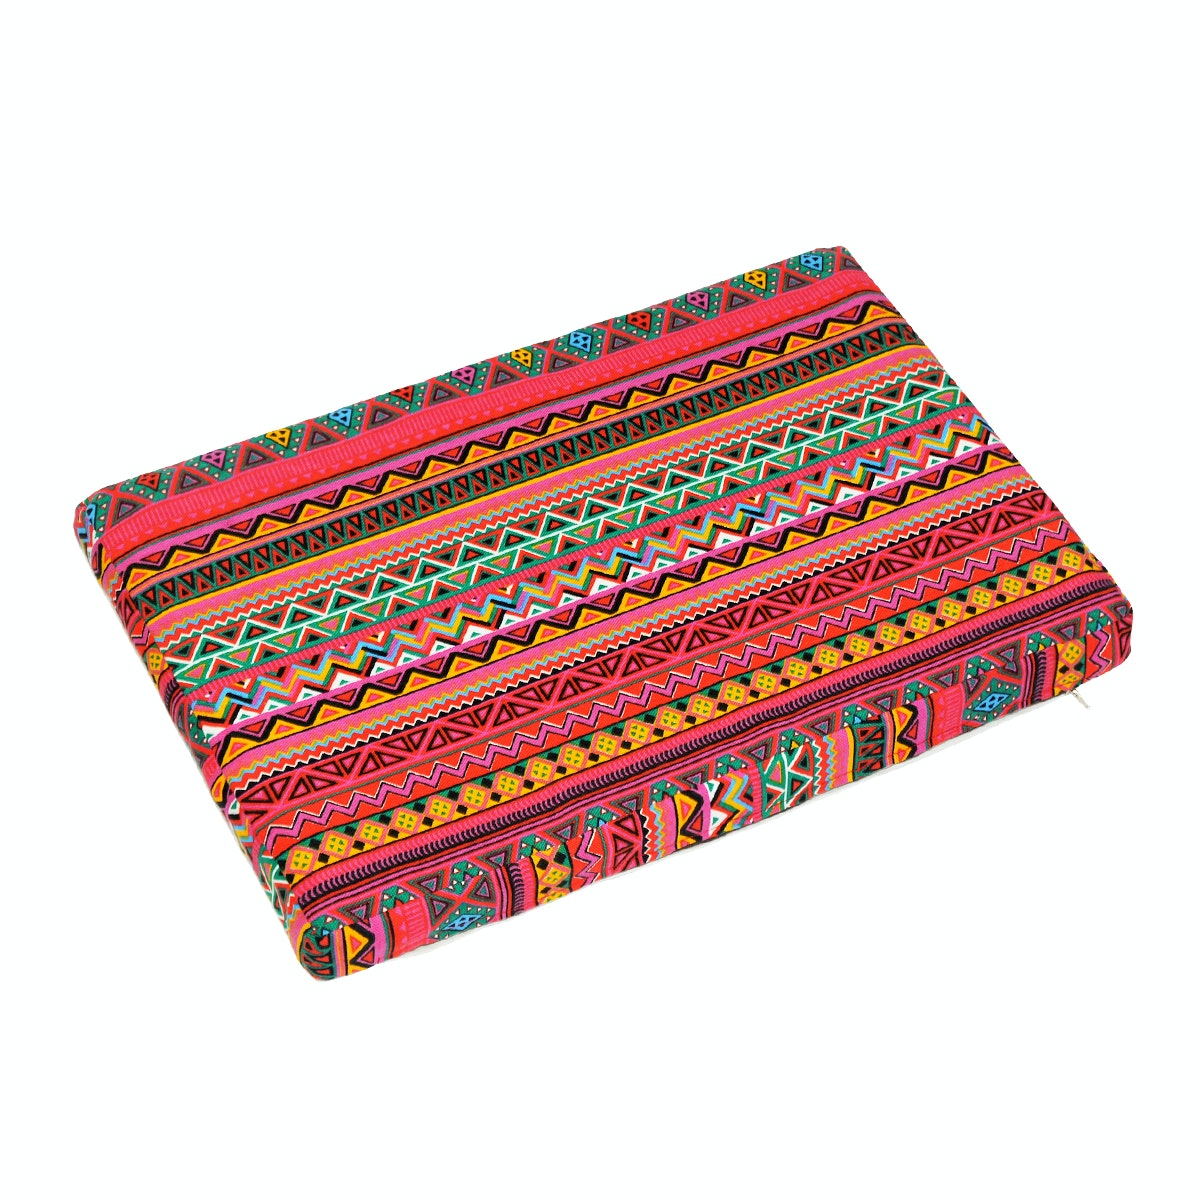 Stiletto In Style Floor cushion / Alas duduk - Tribal Pink